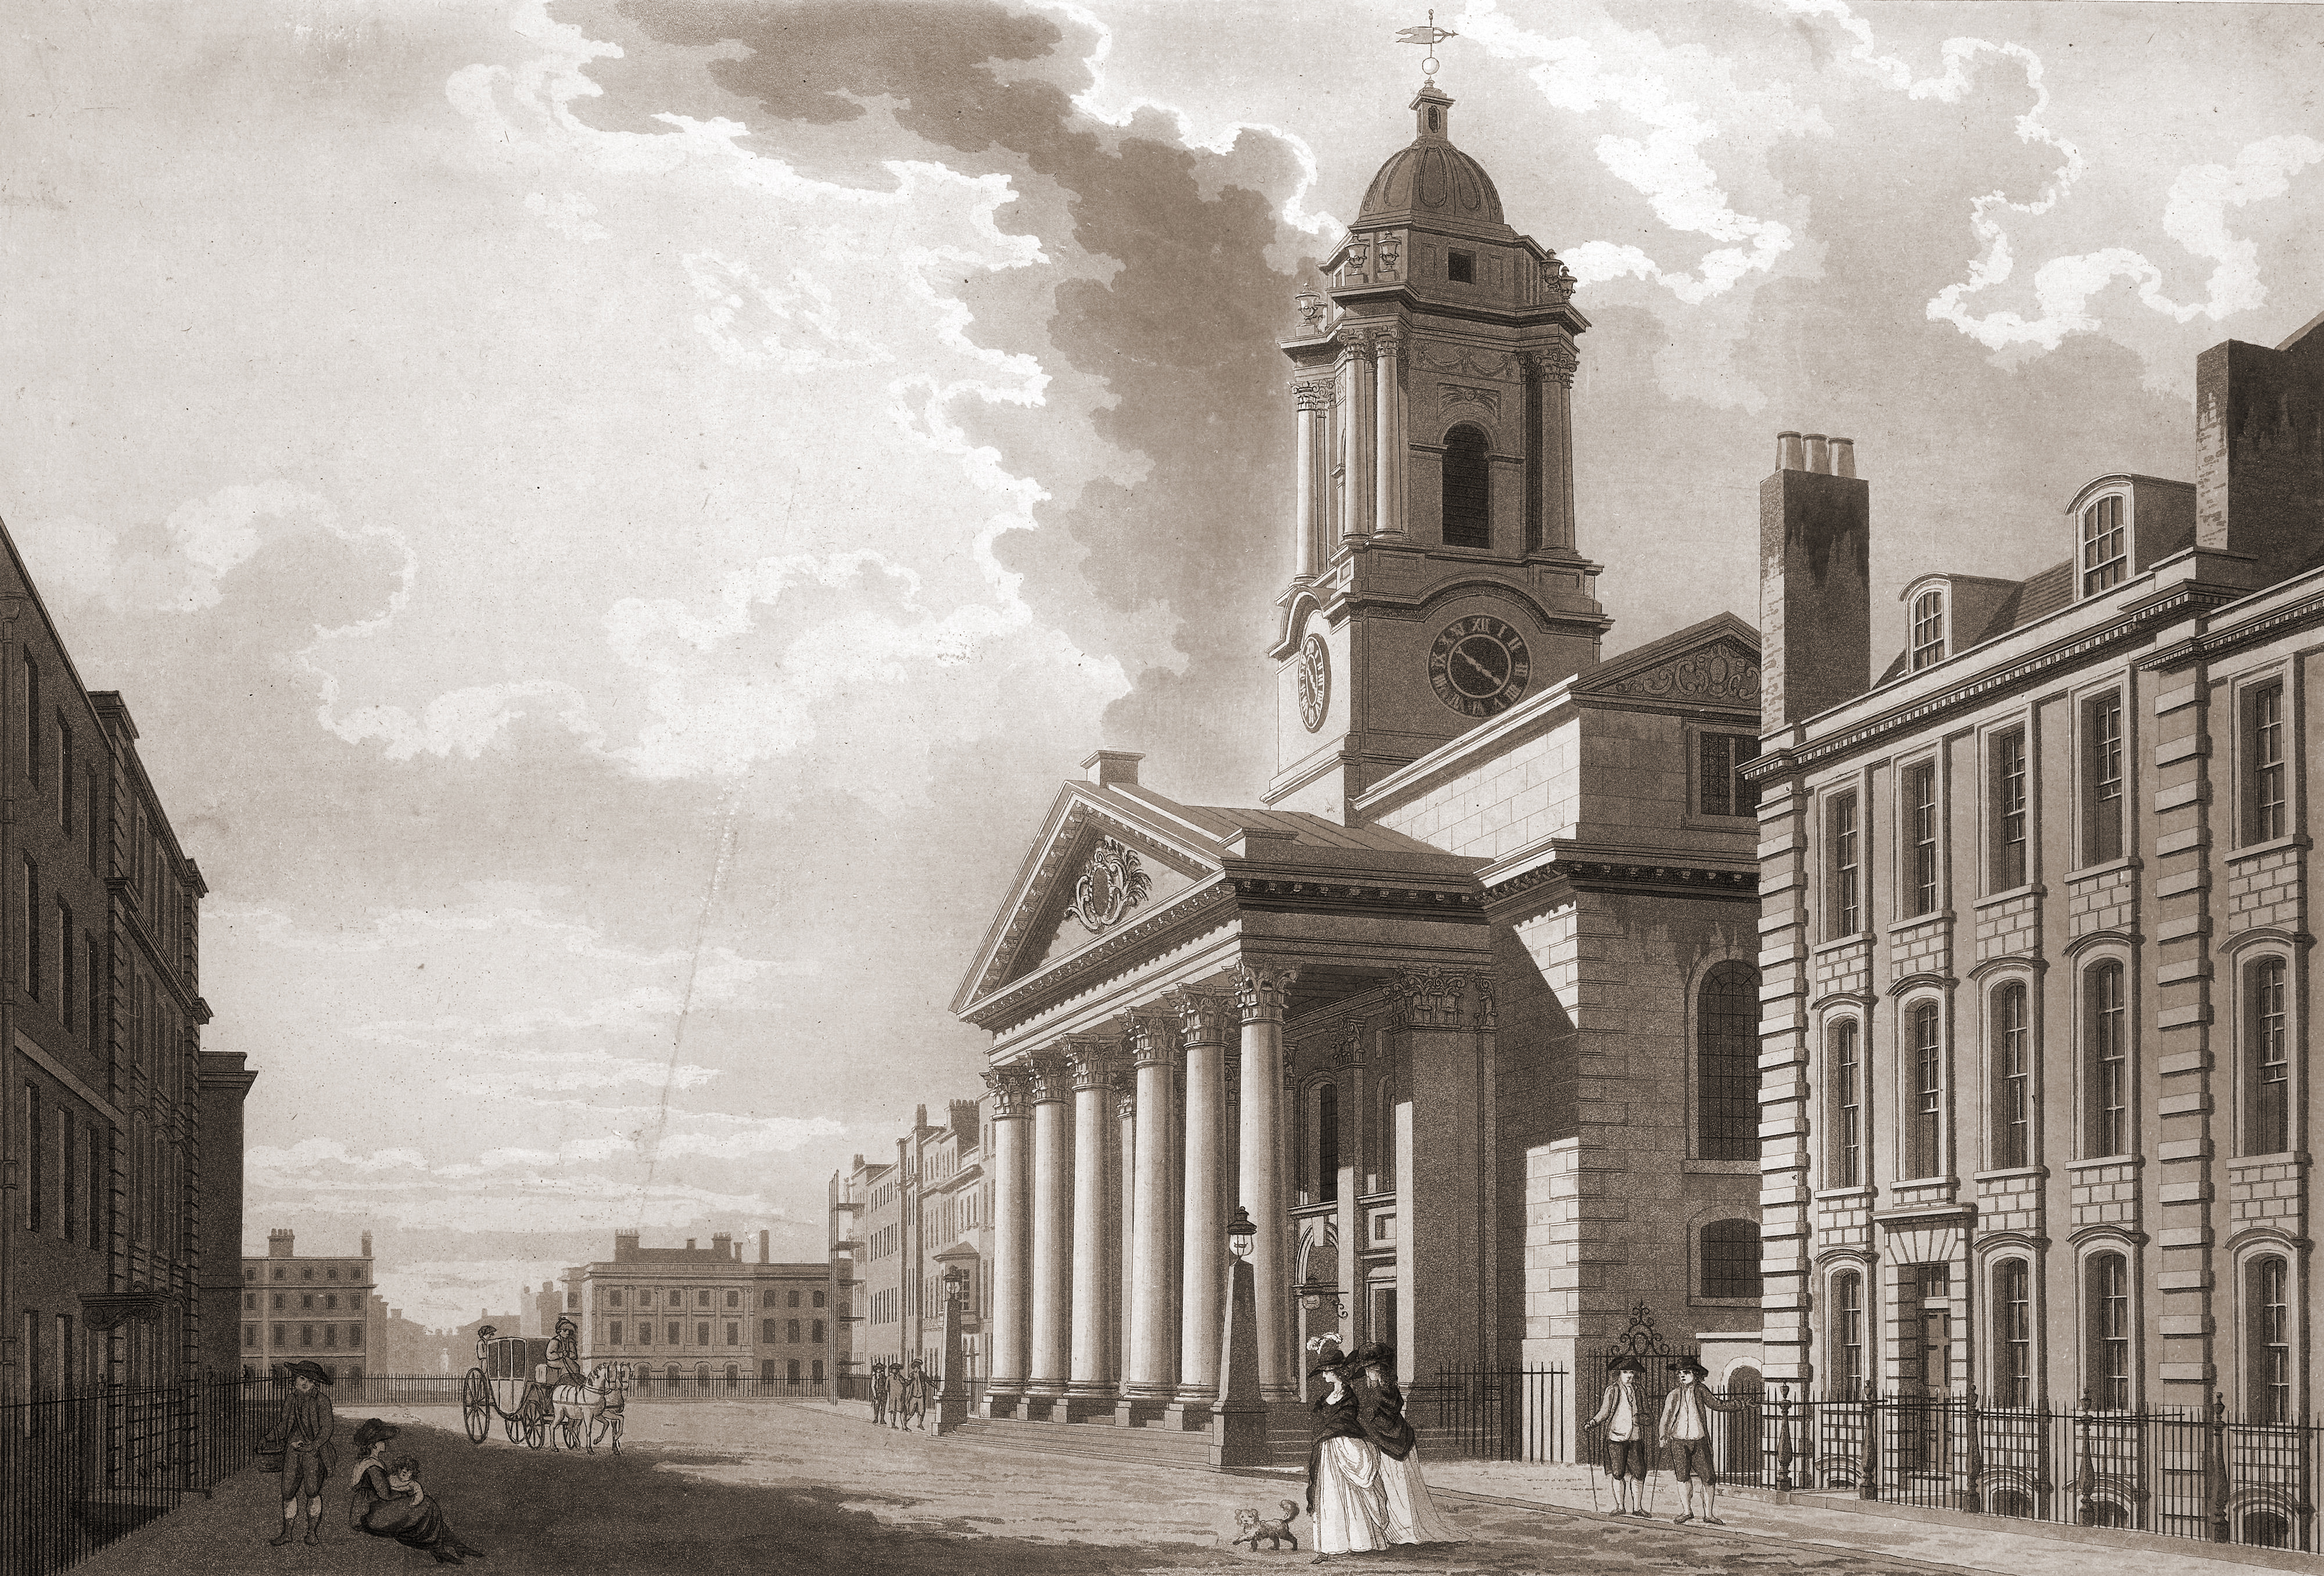 File:St George's Hanover Square by T Malton. 1787.jpg